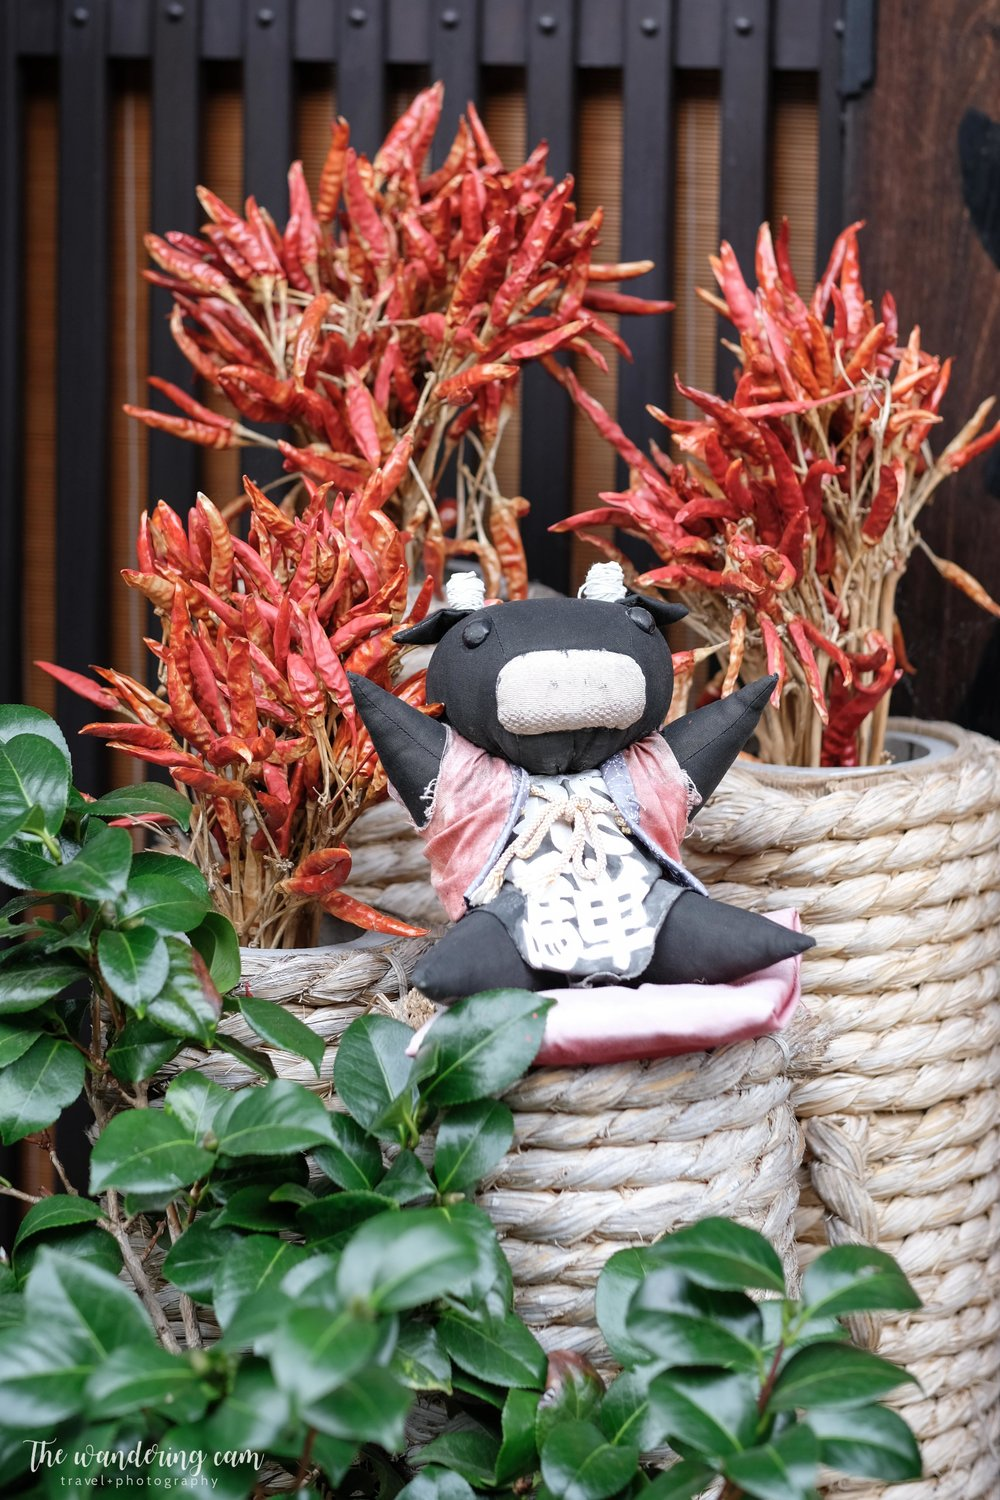 A sarubobo (さるぼぼ) is a Japanese amulet and doll that is the symbol of Takayama and the Hida region. They come in different colours (black means protection from evil). Red ones were common which represents healthy family and children.